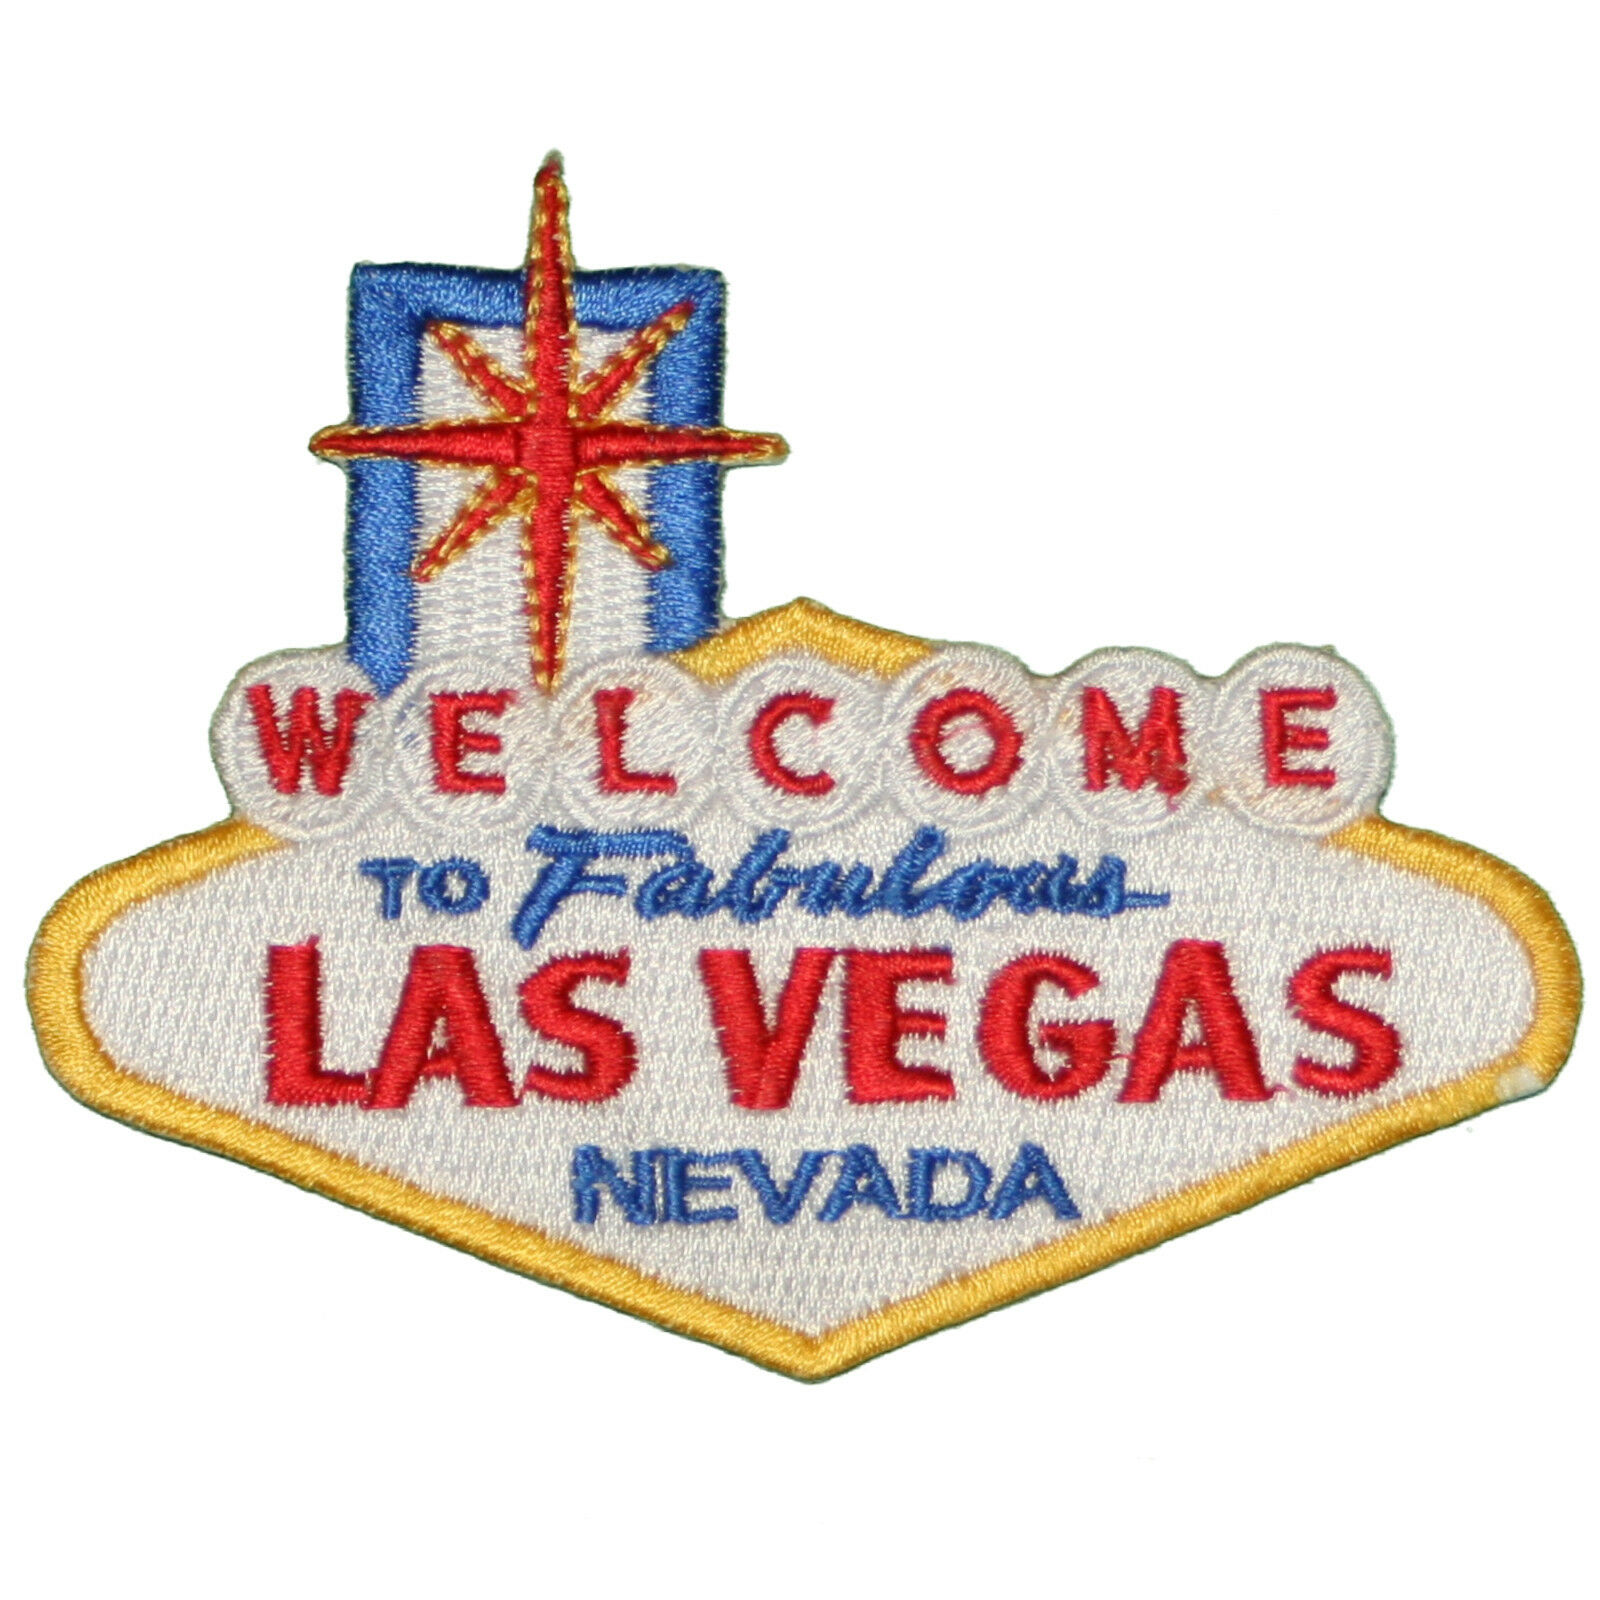 Welcome to fabulous las vegas embroidered iron on or sew